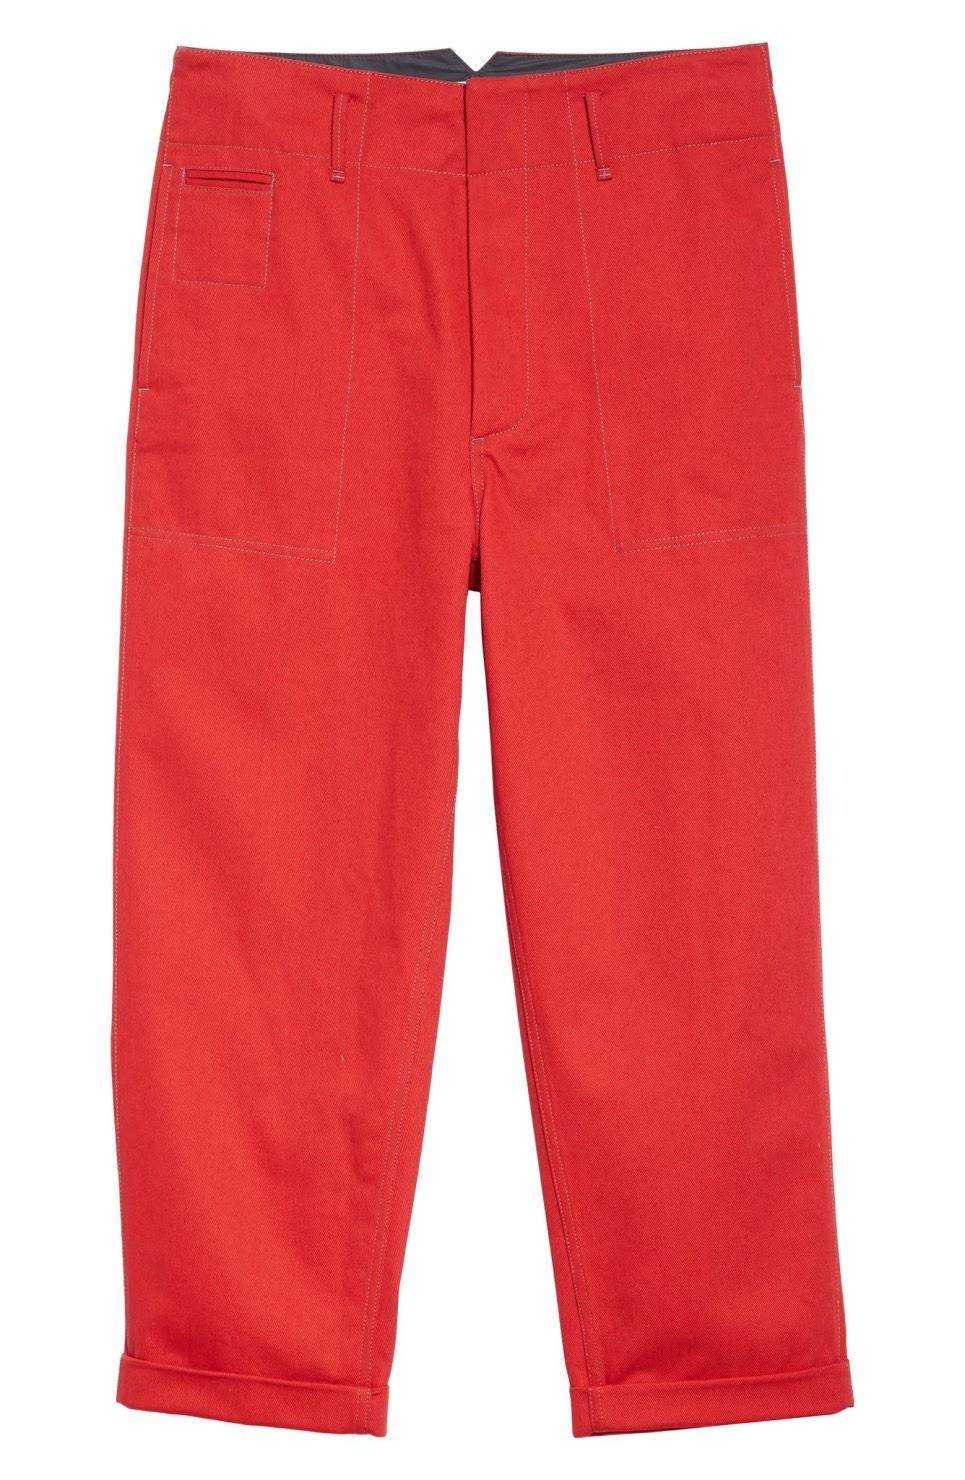 Marni_Cotton Drill Pants_Red_$690.jpeg